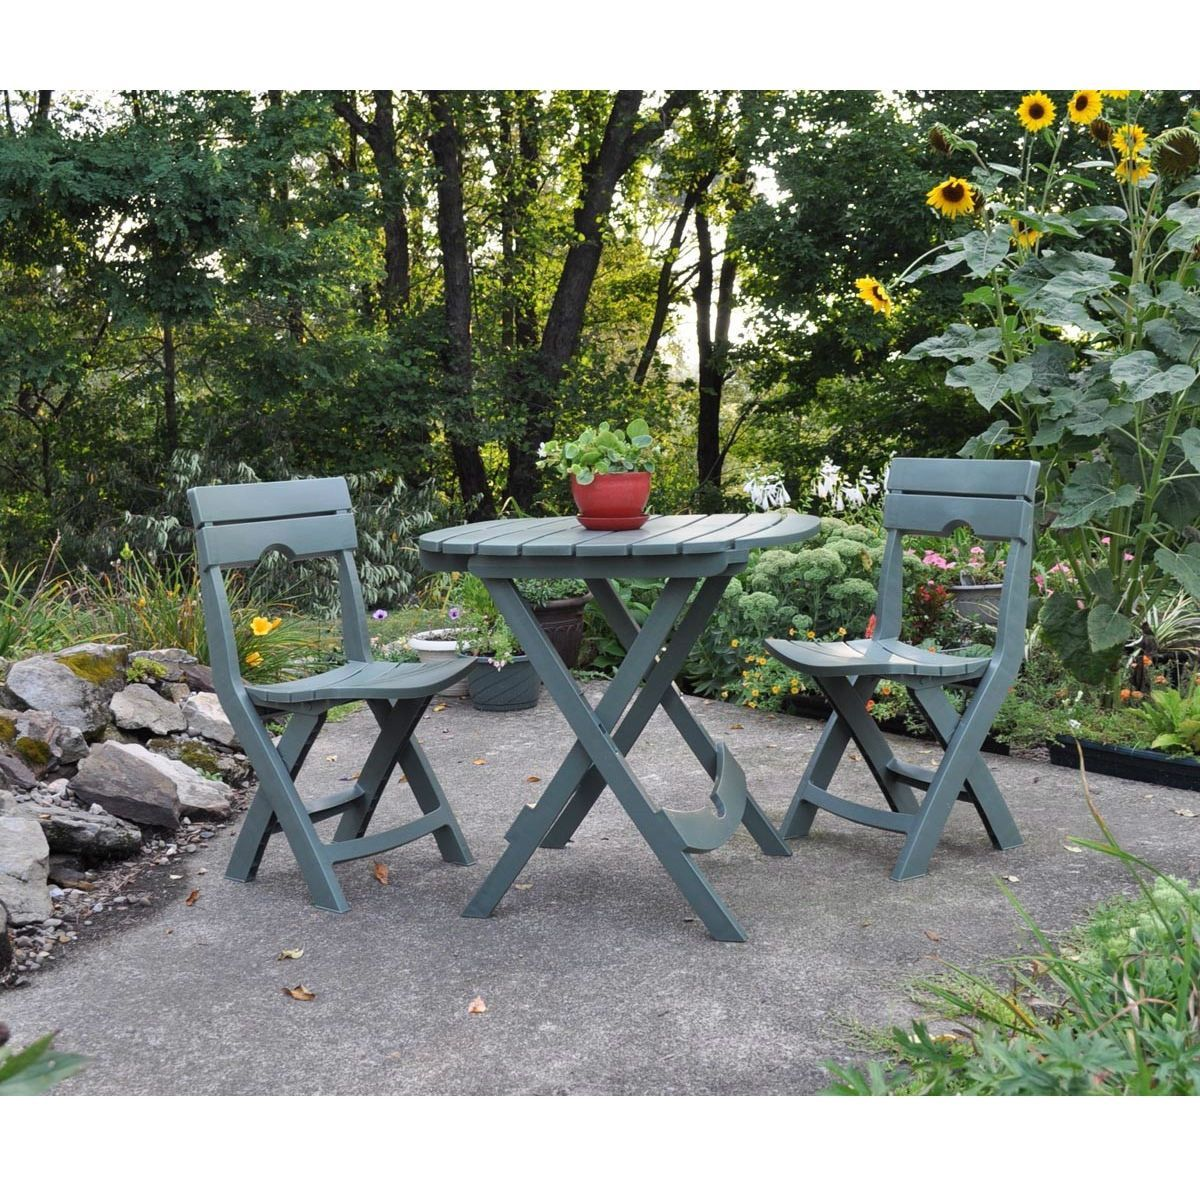 Sage green folding patio dining cafe table in lightweight sturdy